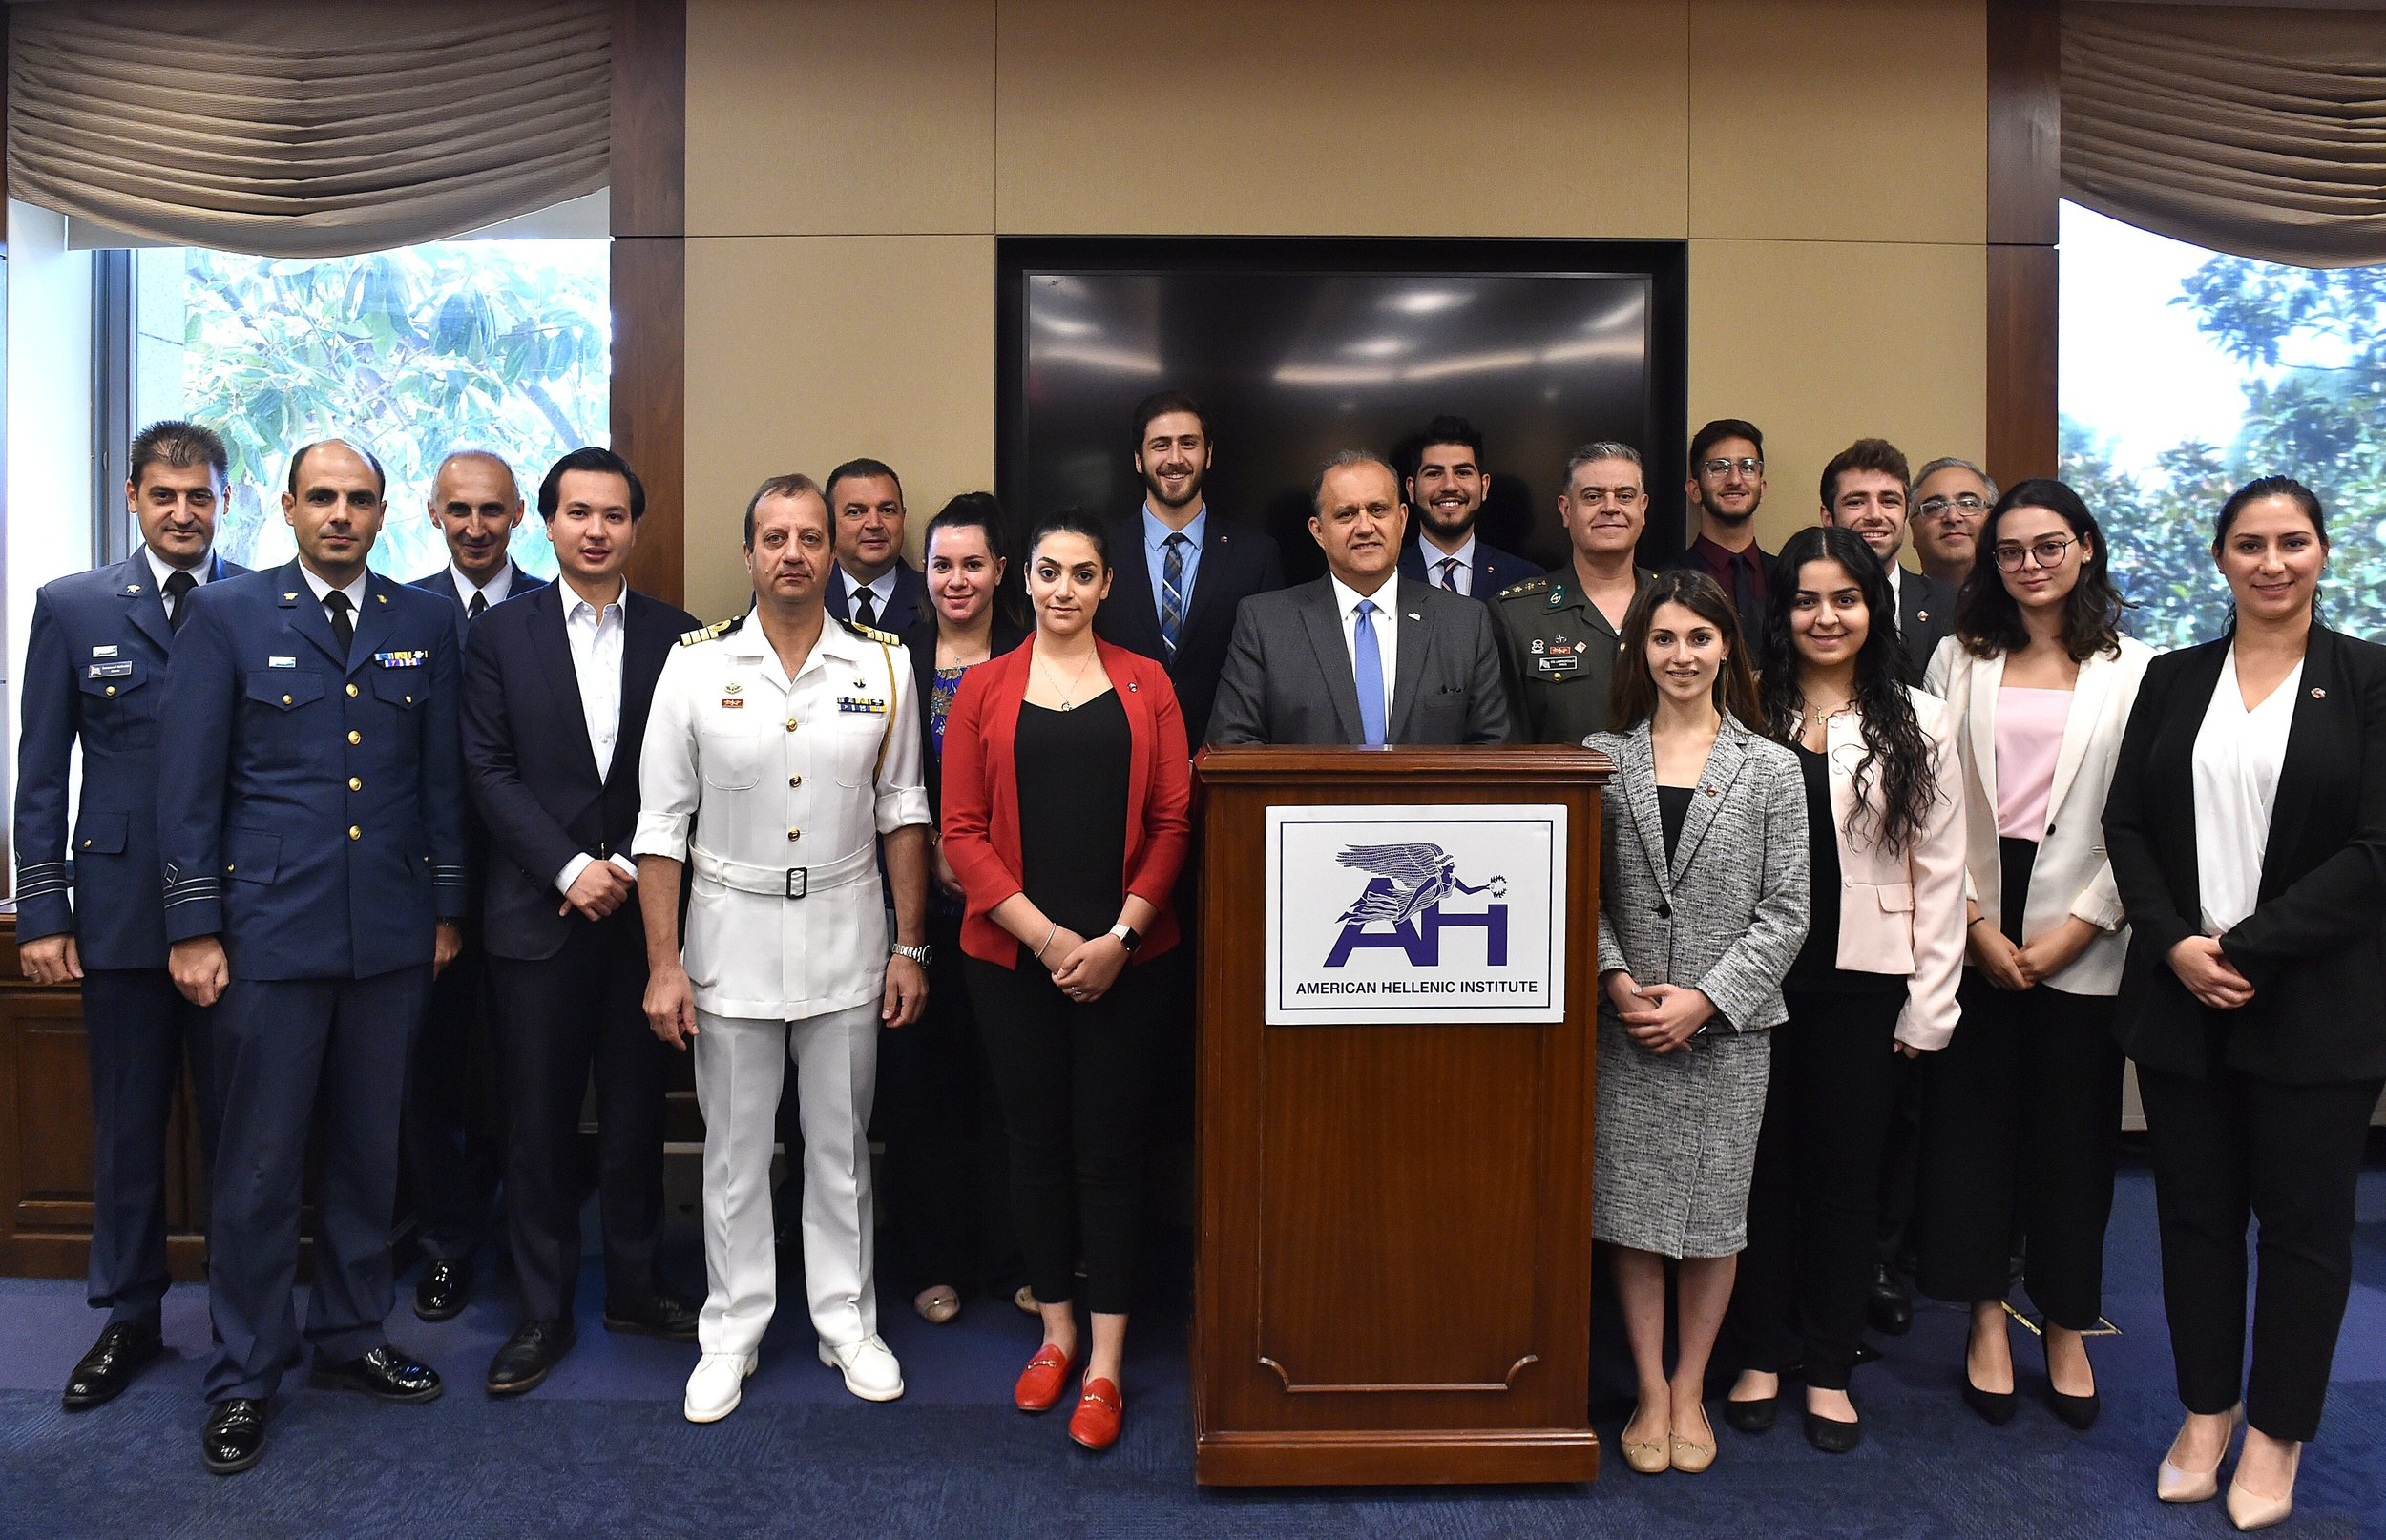 Group photo consisting of Greece's attaches and various military officials, AHI President Larigakis, Legislative Assistant Gerasoulis, and a delegation from the Armenian National Committee of America (ANCA)